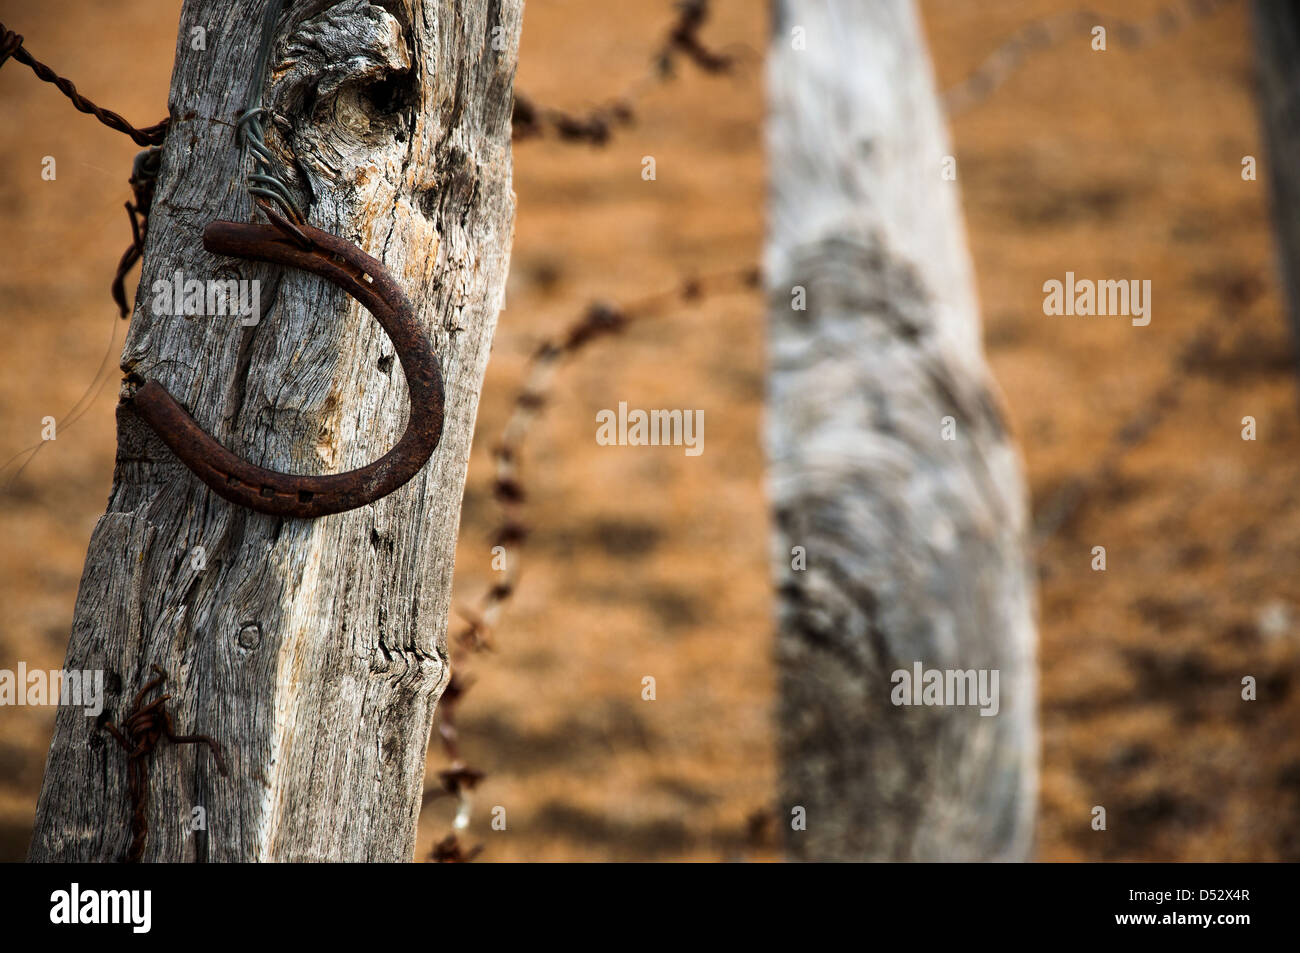 An old rusty horseshoe on a weathered fence post - Stock Image